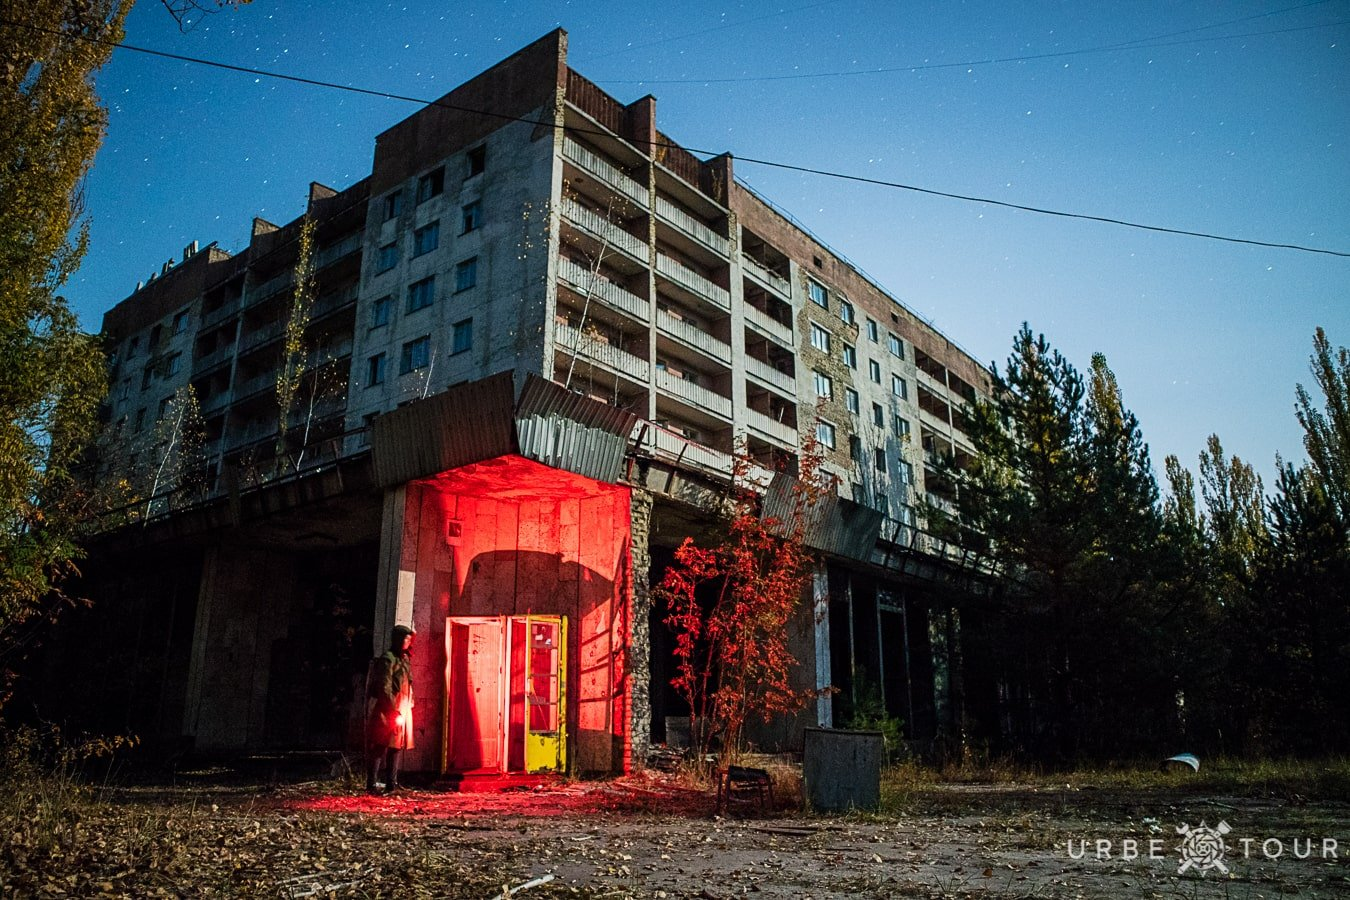 chernobyl-exploration-tour-throw-golden-autumn-53 Chernobyl URBEX Tour Through Golden Autumn